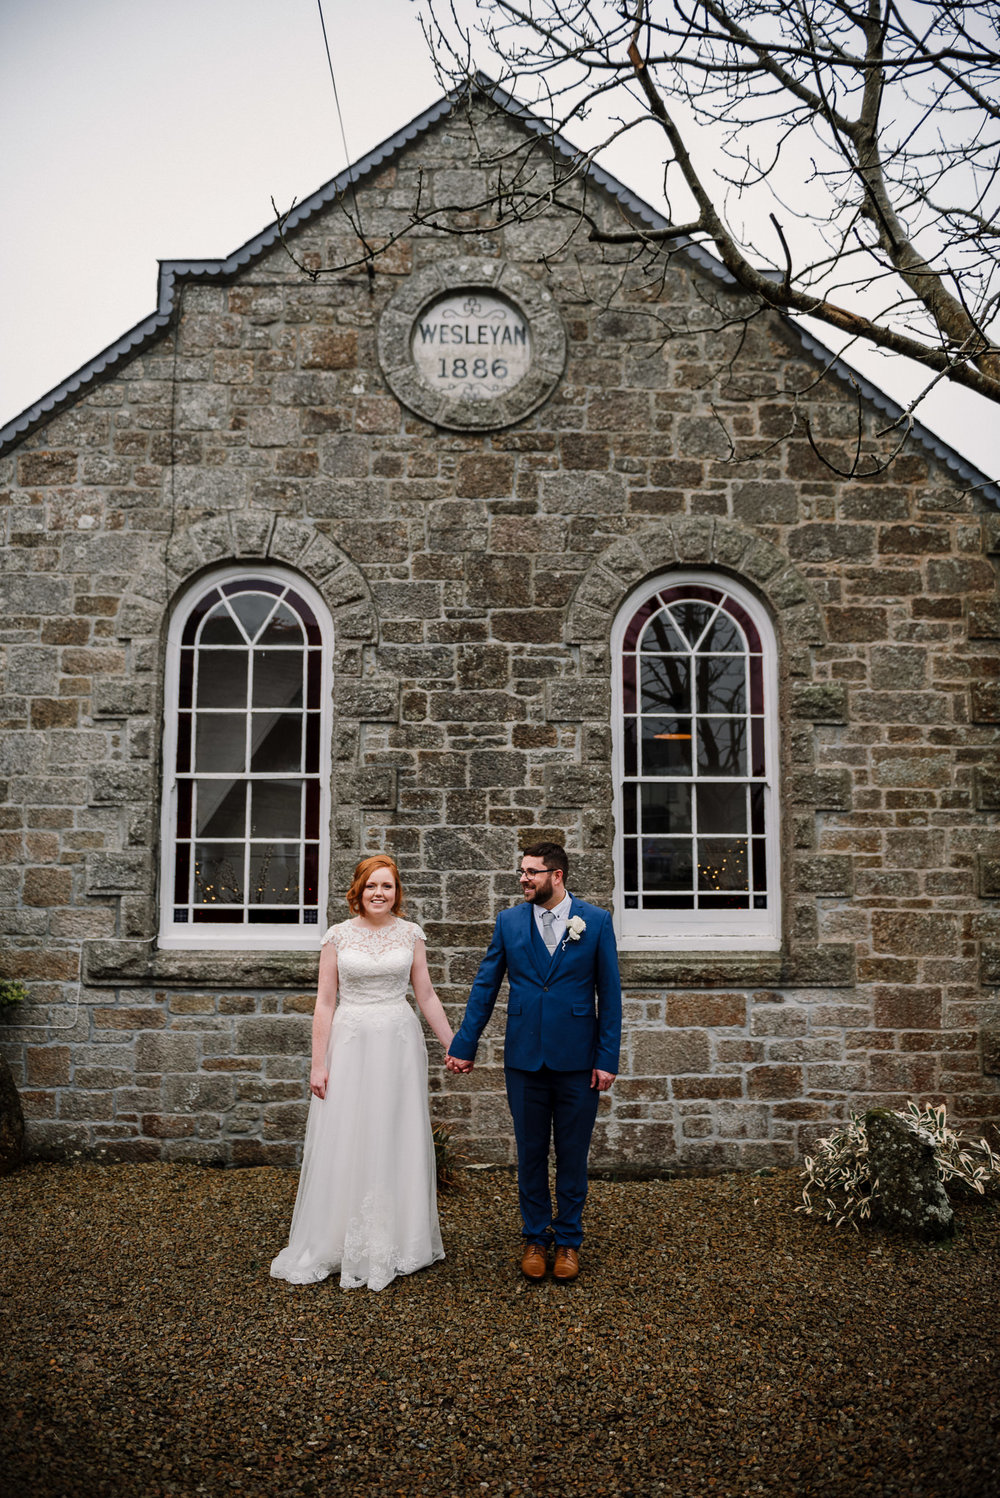 Bride and groom stood together outside the Dreamcatcher Wedding Venue in Cornwall. Elopement wedding photography.